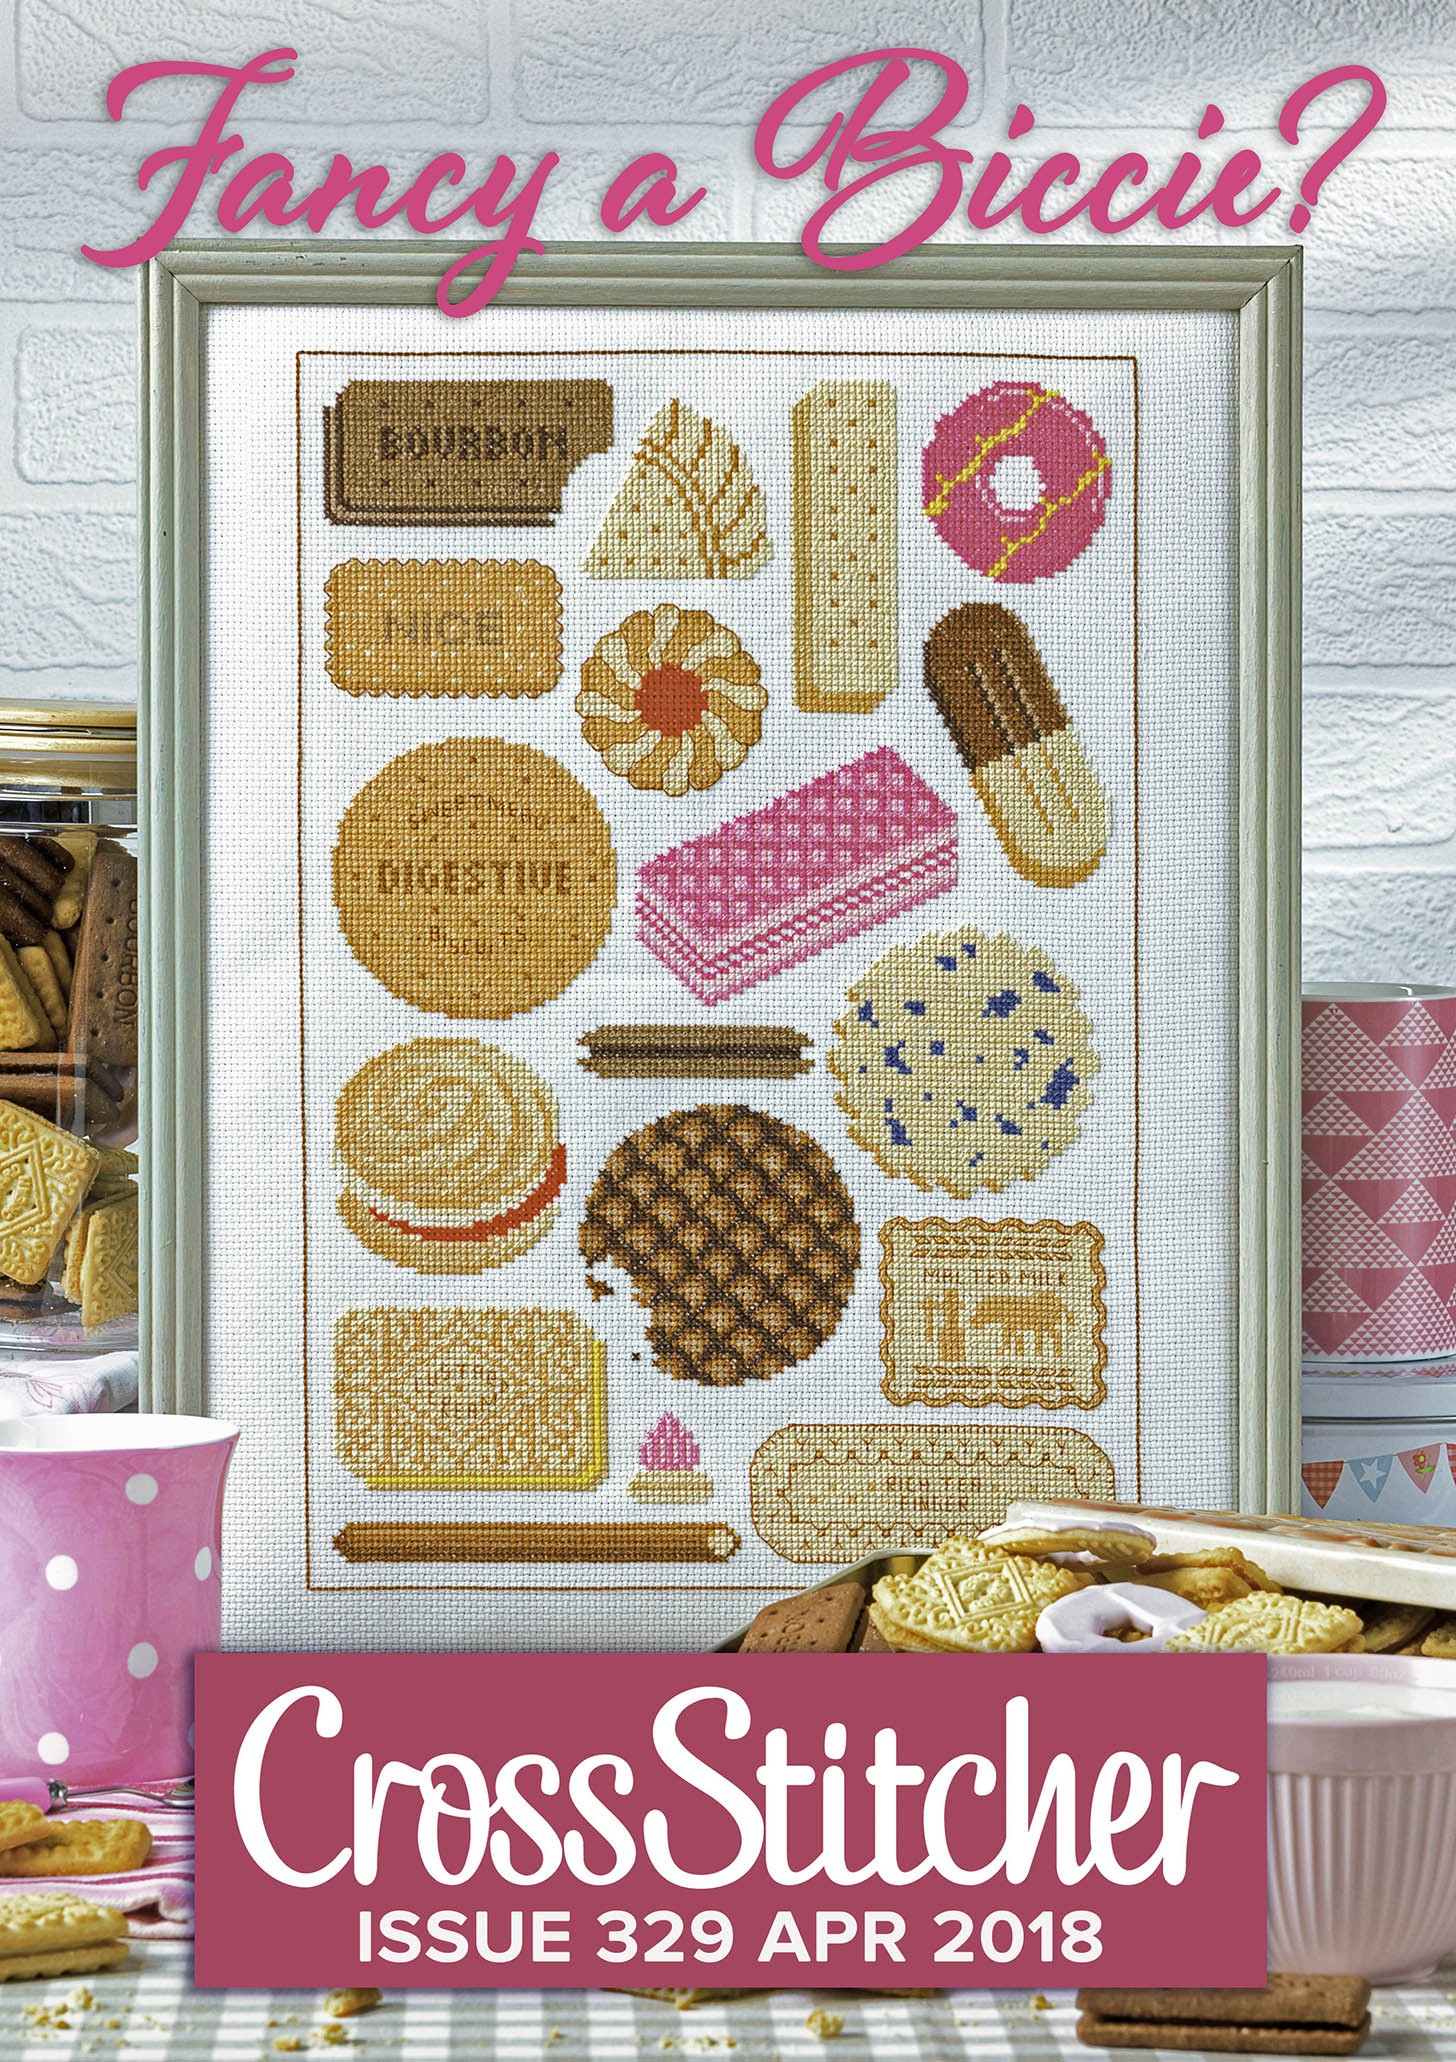 Cross Stitcher Project Pack - Fancy a Biccie XST329